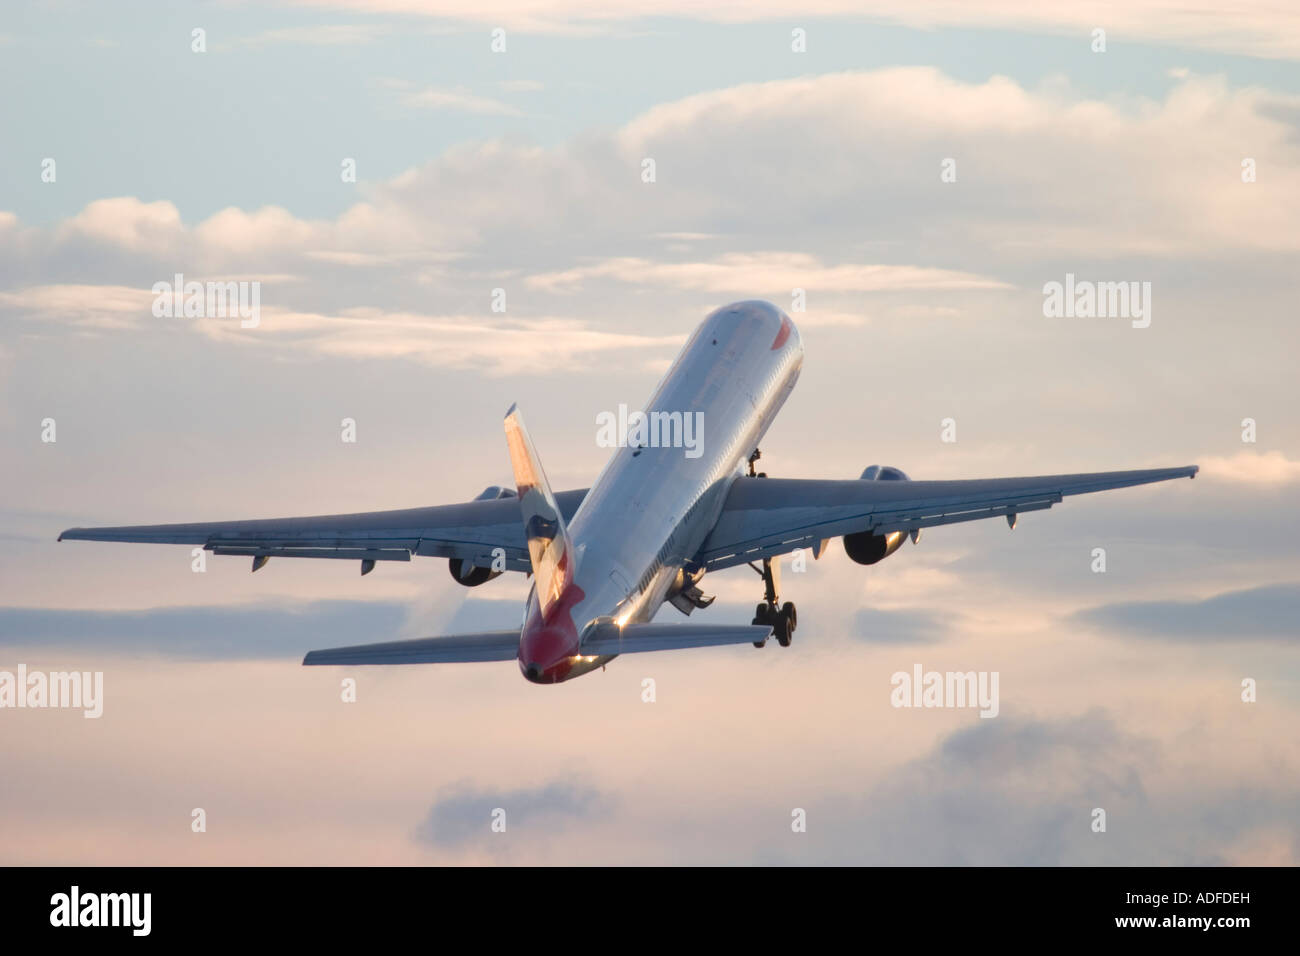 British Airways Boeing 757 just after take off from London Heathrow Airport England UK - Stock Image